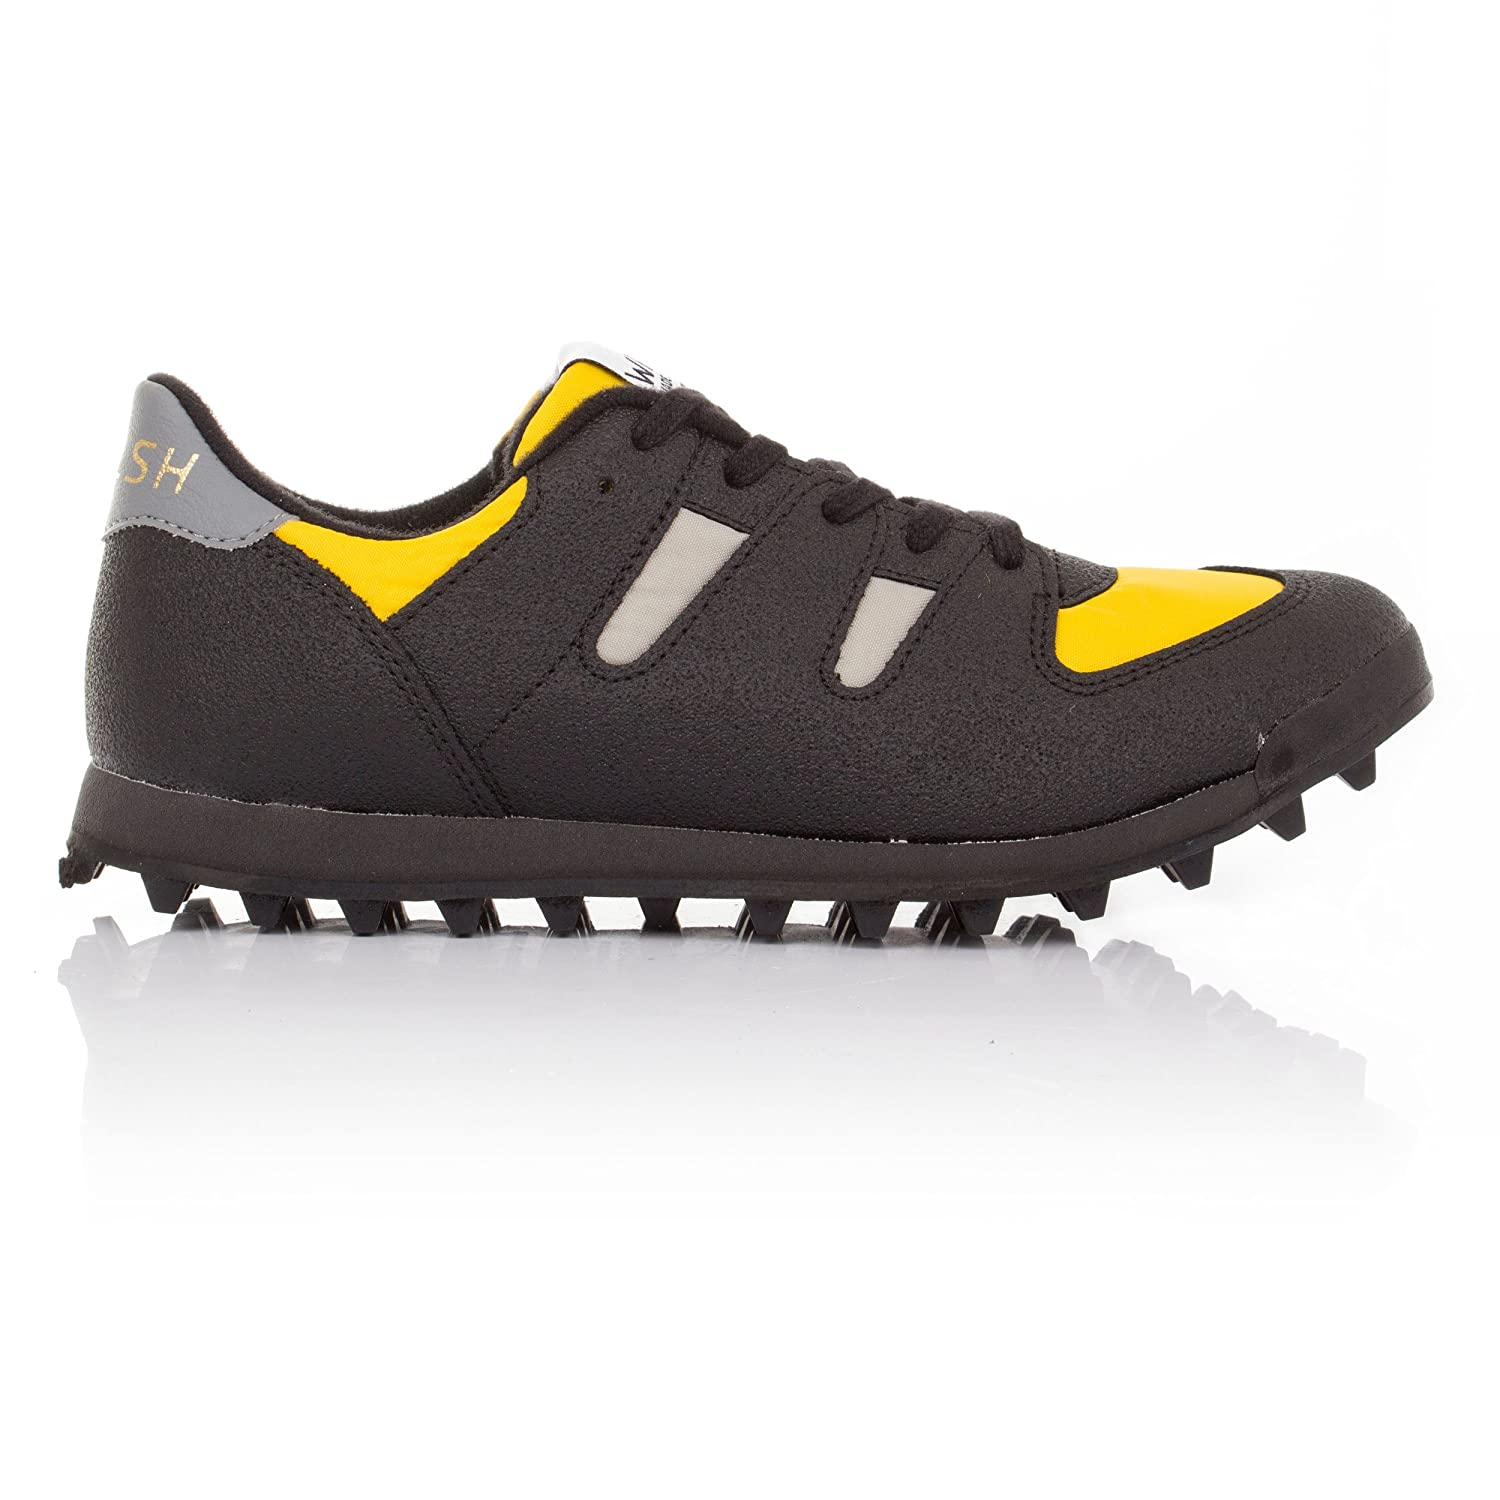 Walsh PB Elite Extreme Fell Running Shoes SS18